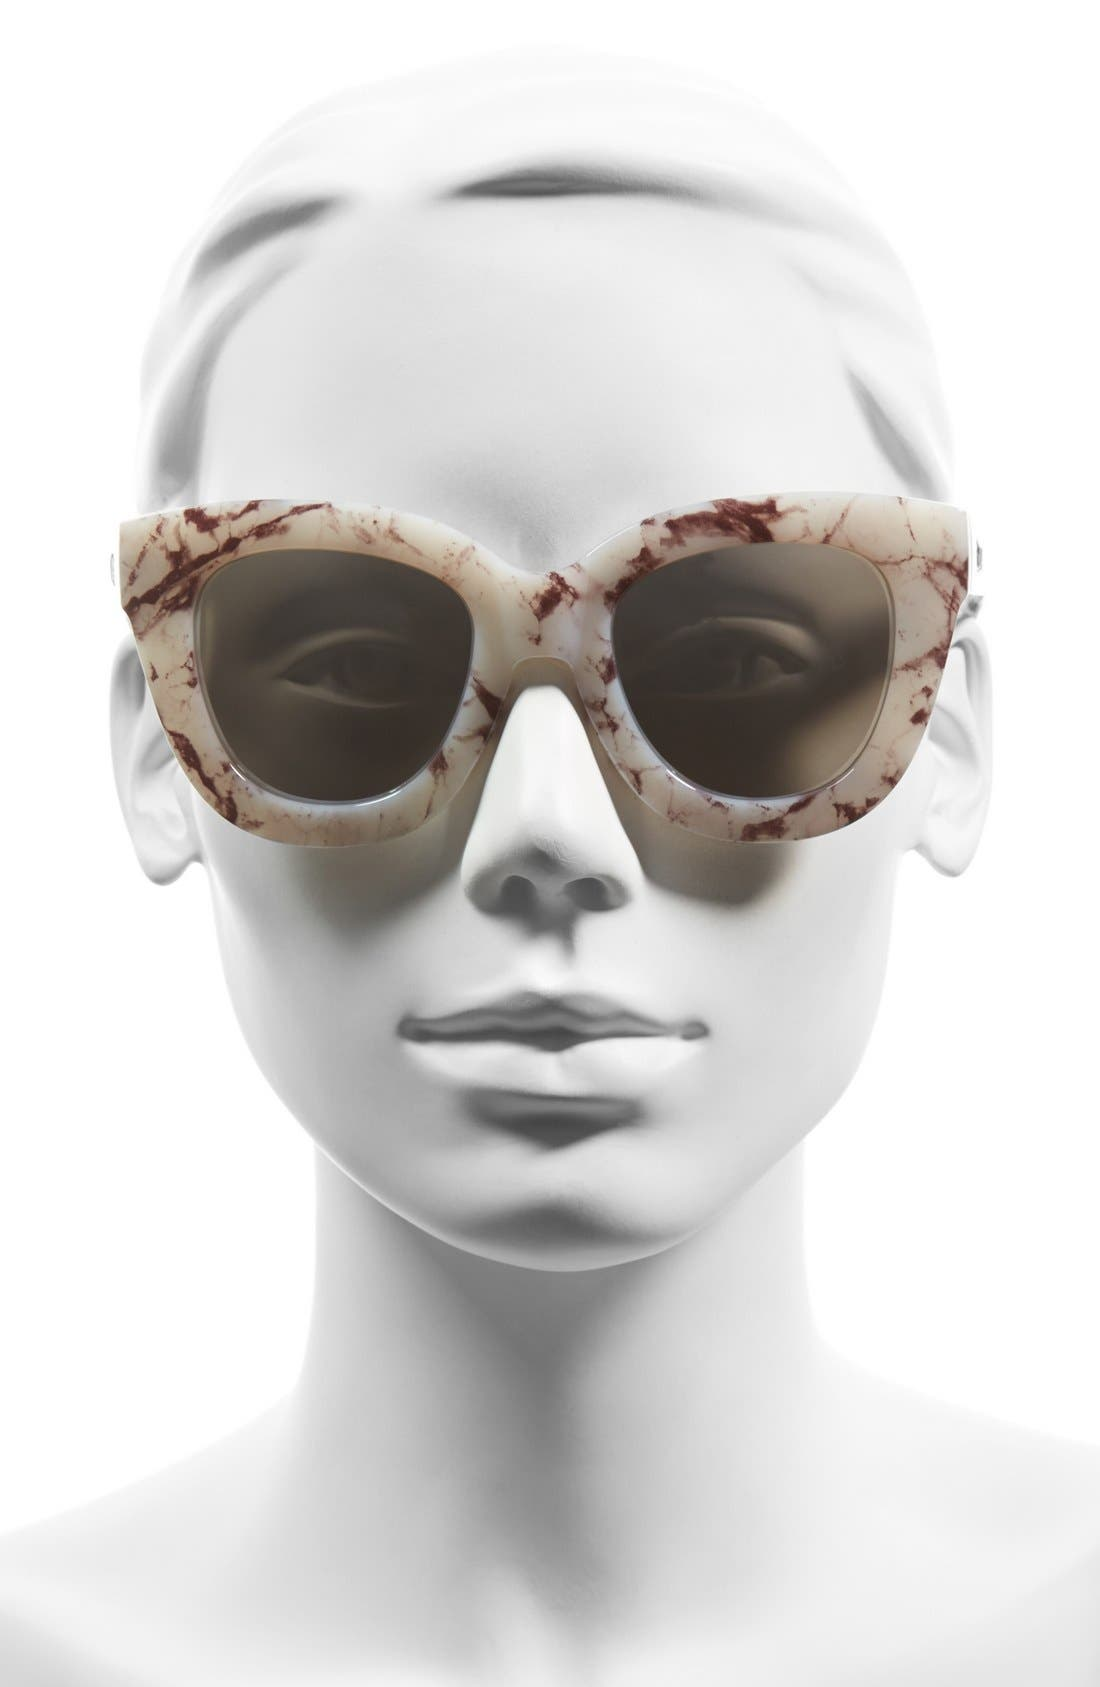 'Sugar and Spice' 50mm Cat Eye Sunglasses,                             Alternate thumbnail 3, color,                             White Marble/ Smoke Lens